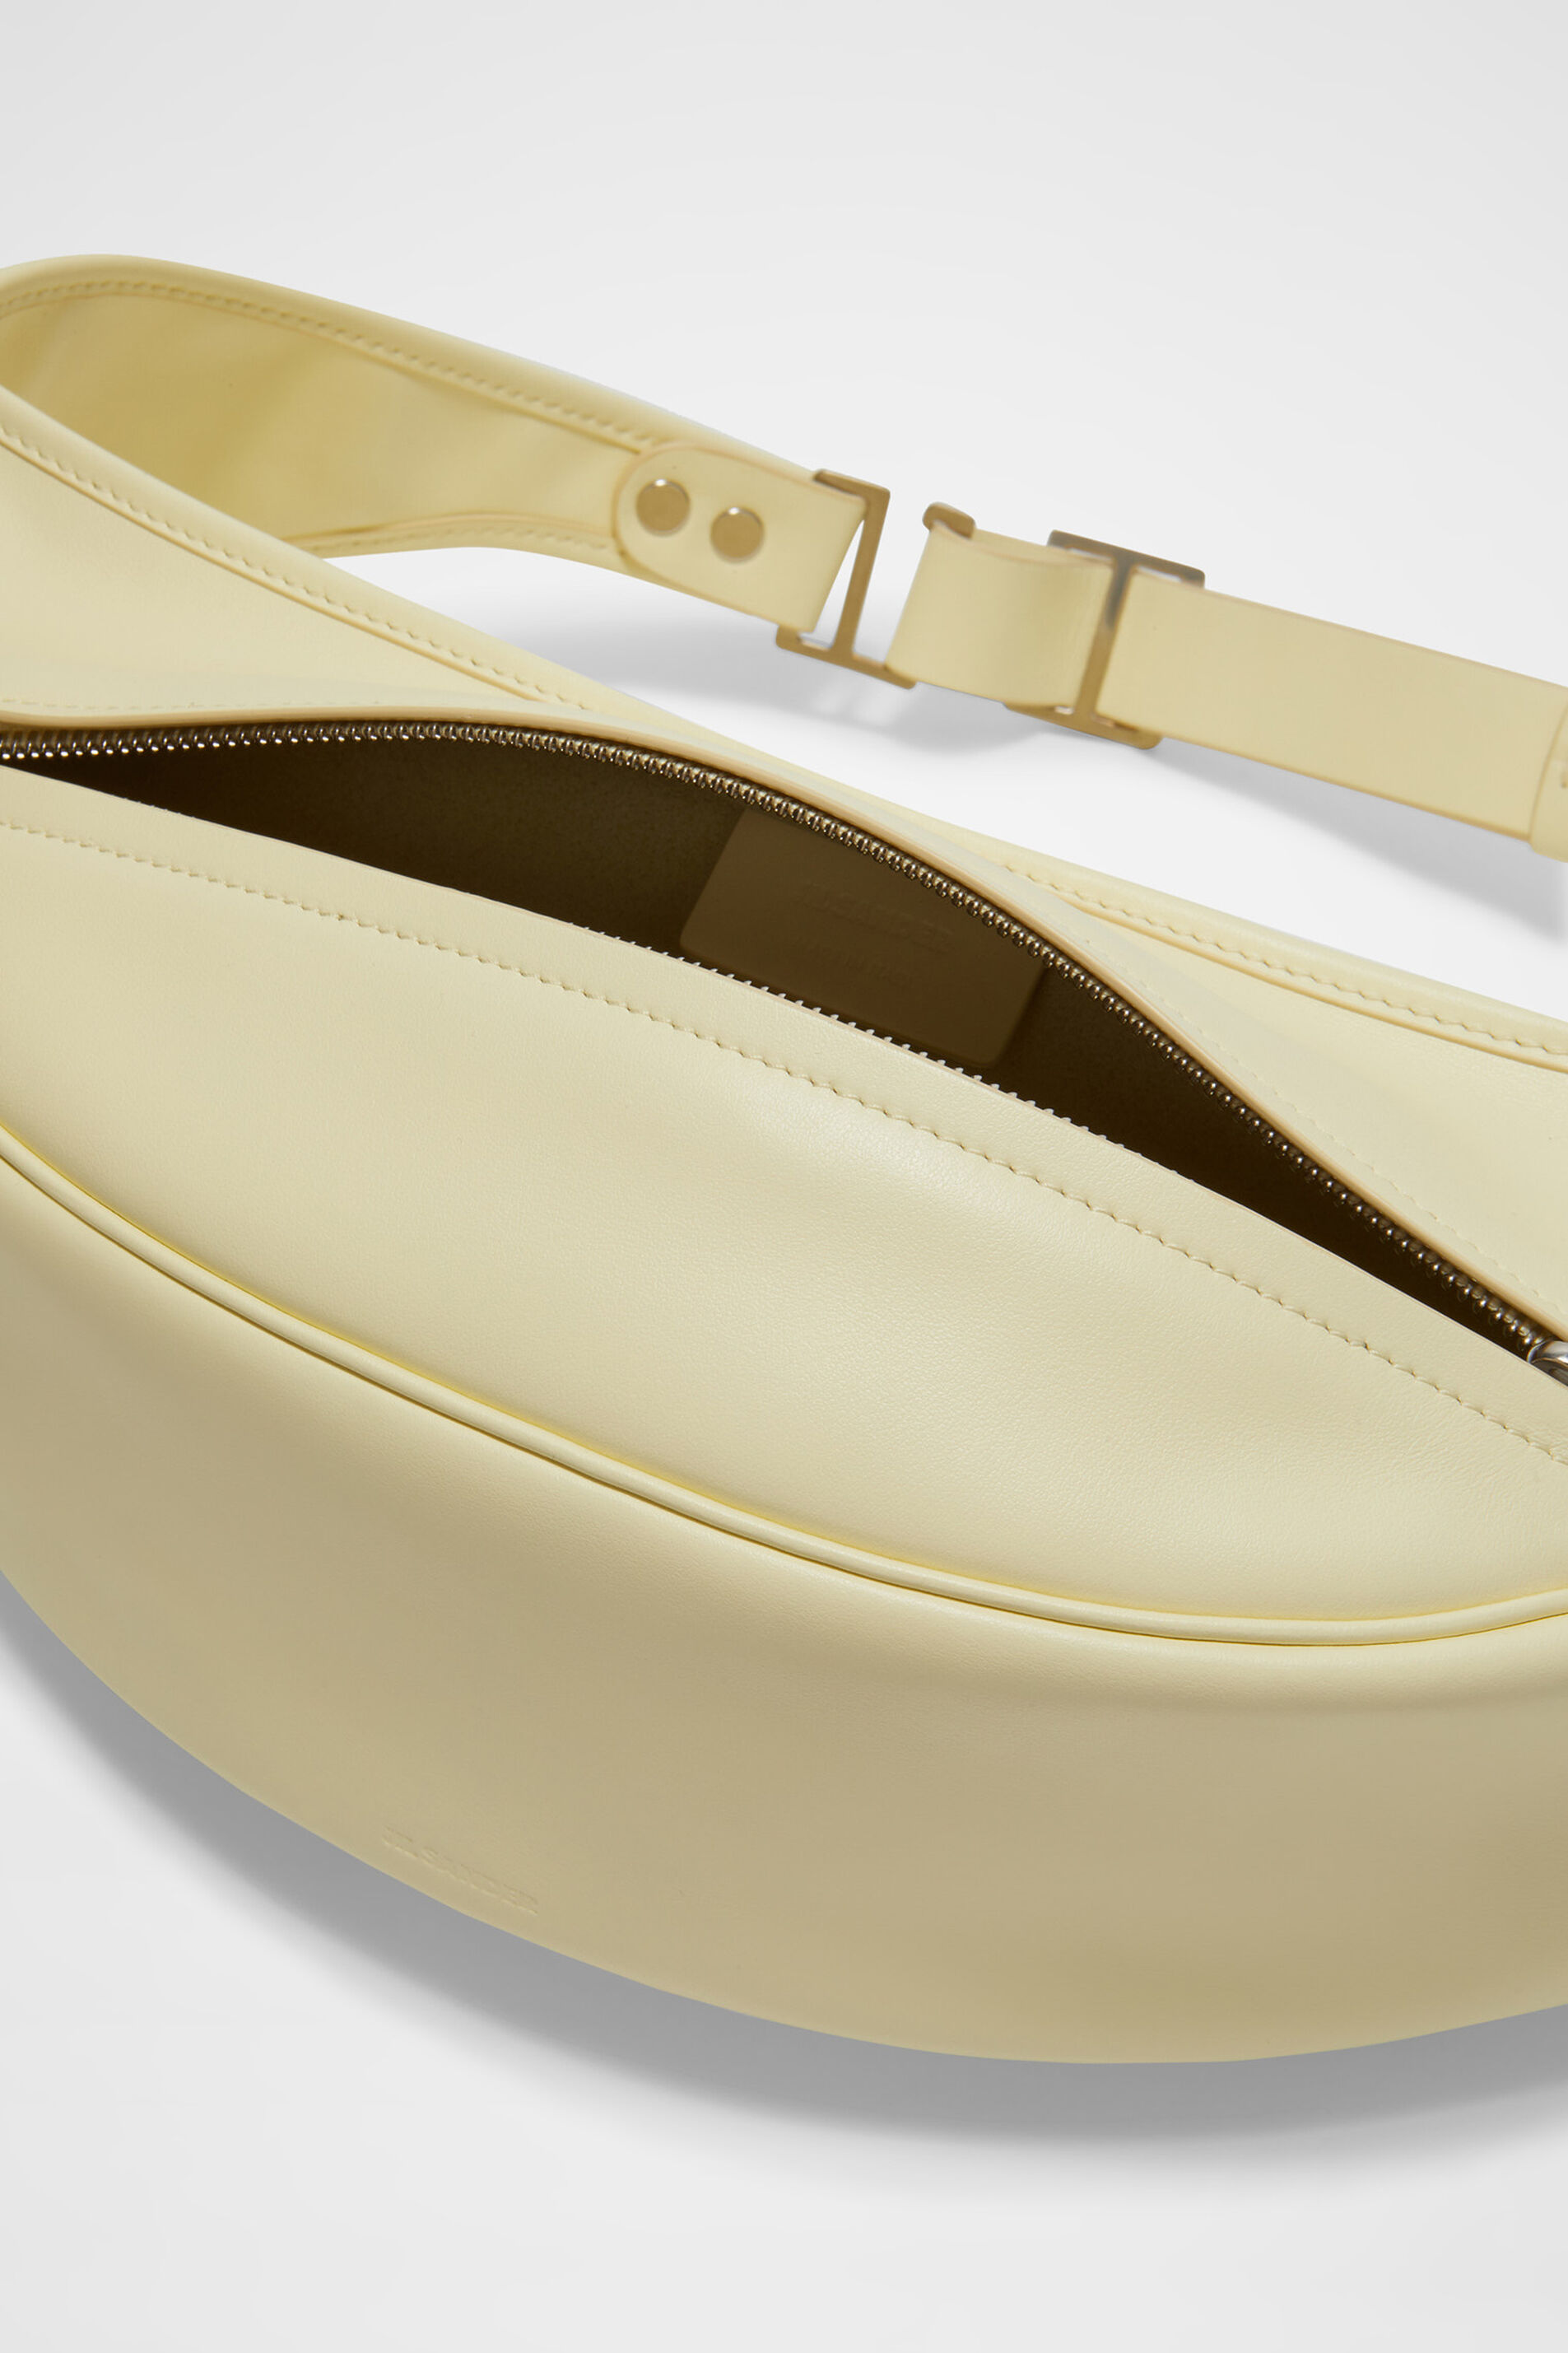 Belt Bag, beige, large